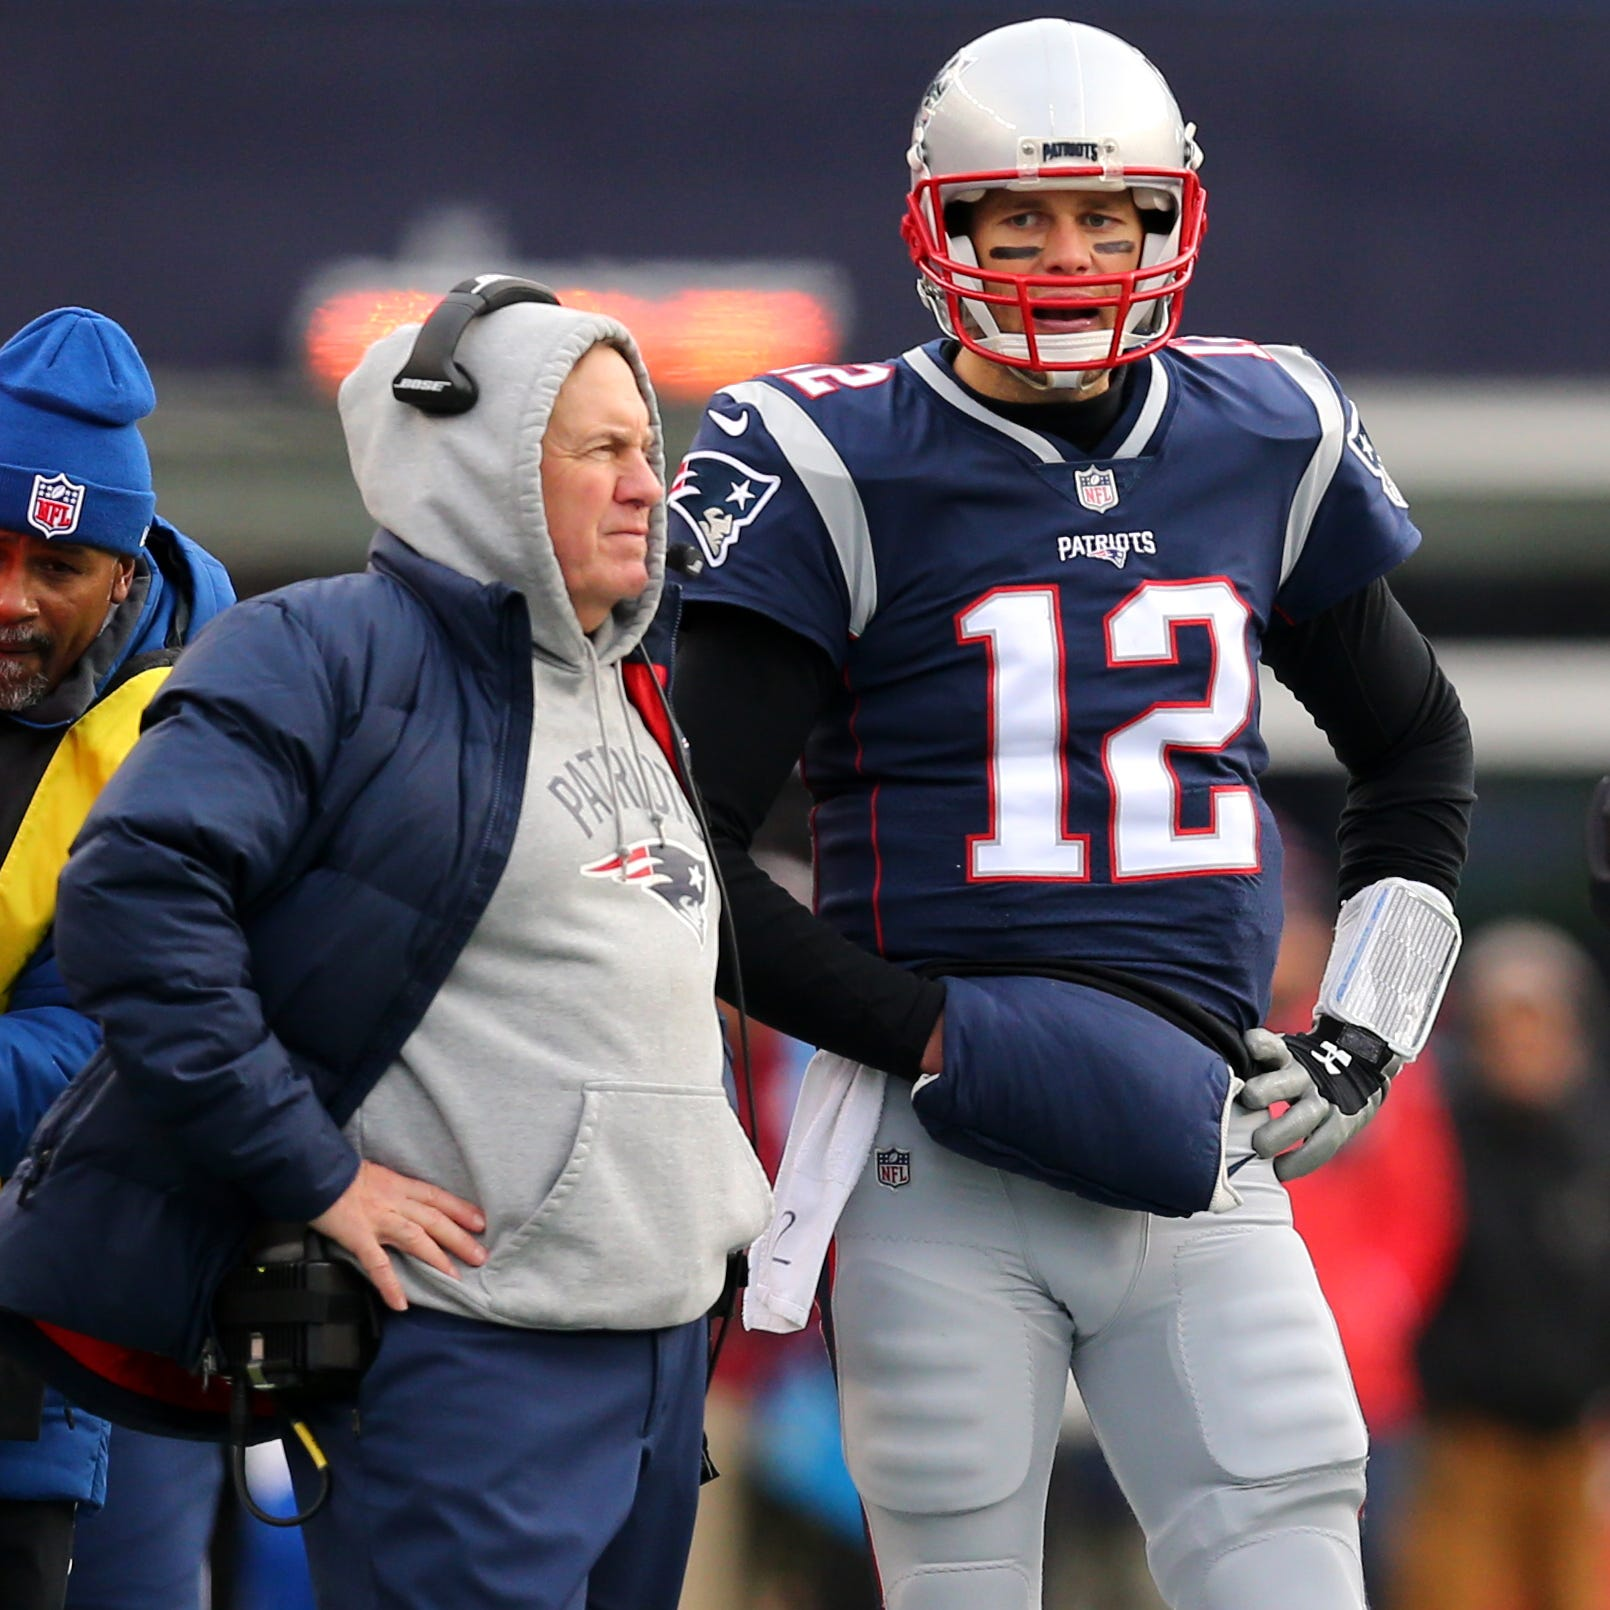 Patriots coach Bill Belichick stands with quarterback Tom Brady during a 2017 game.